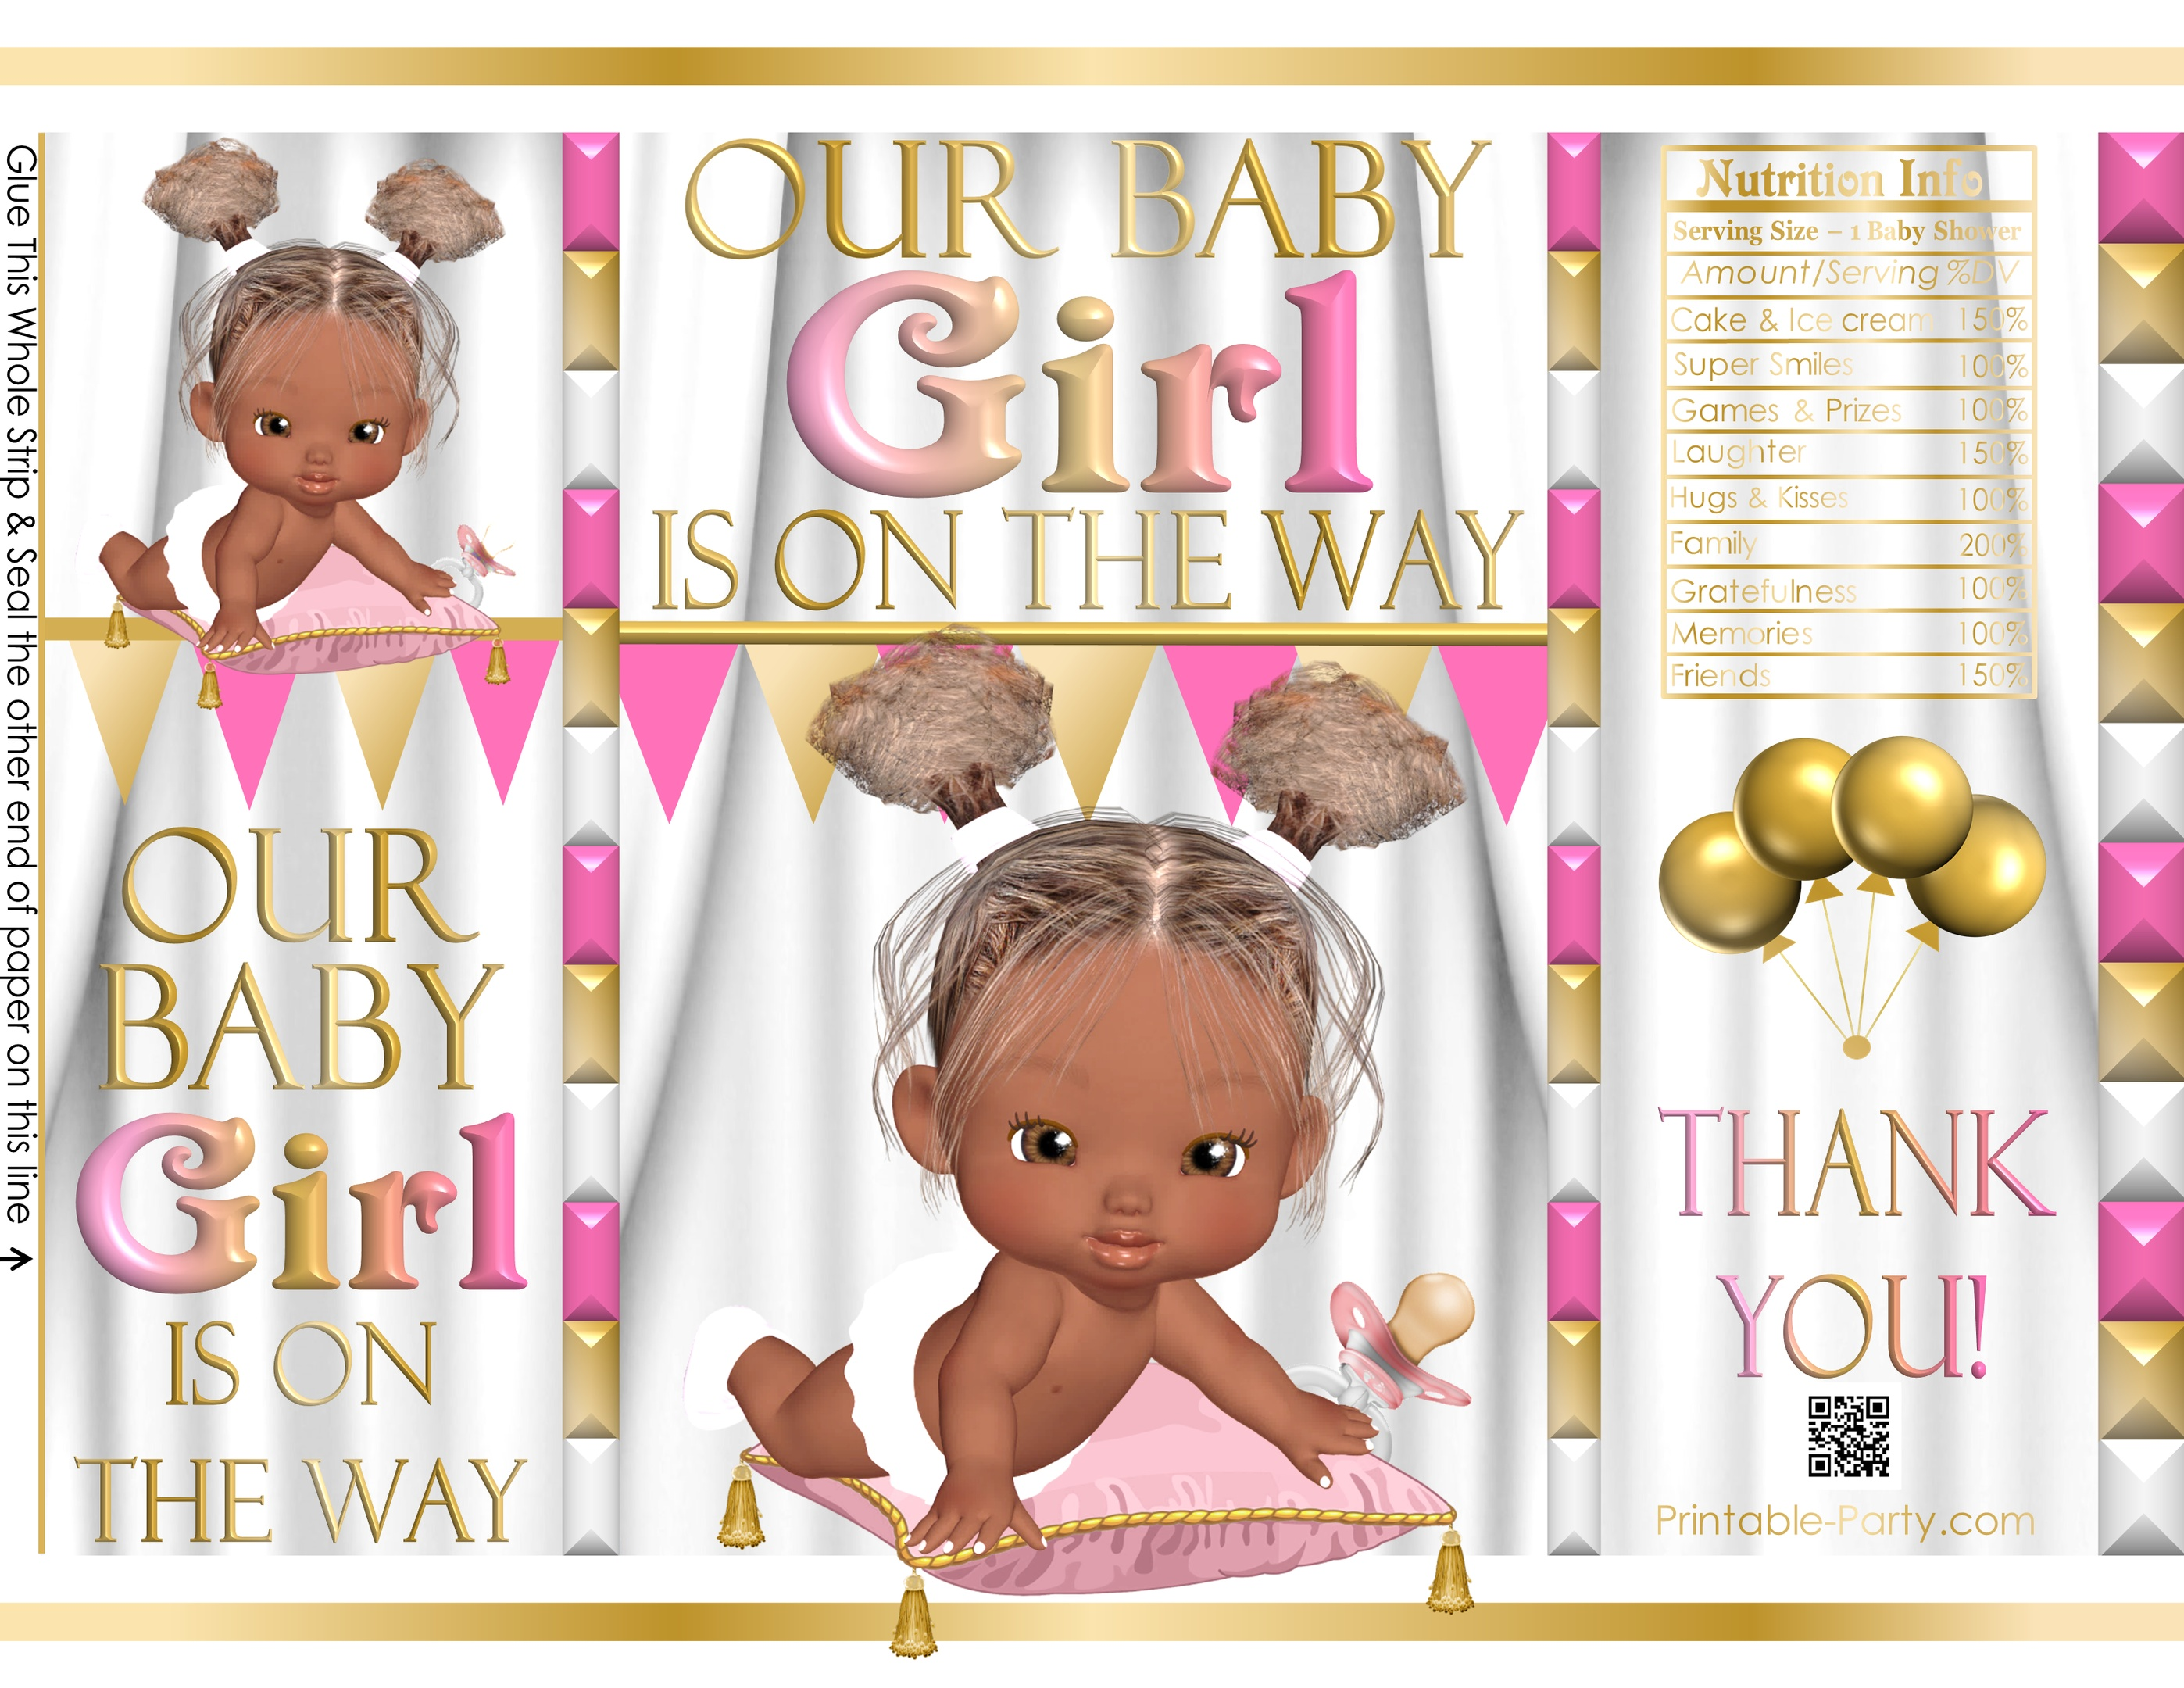 printable-potato-chip-bags-its-a-girl-pinkwhitegold-baby-shower3